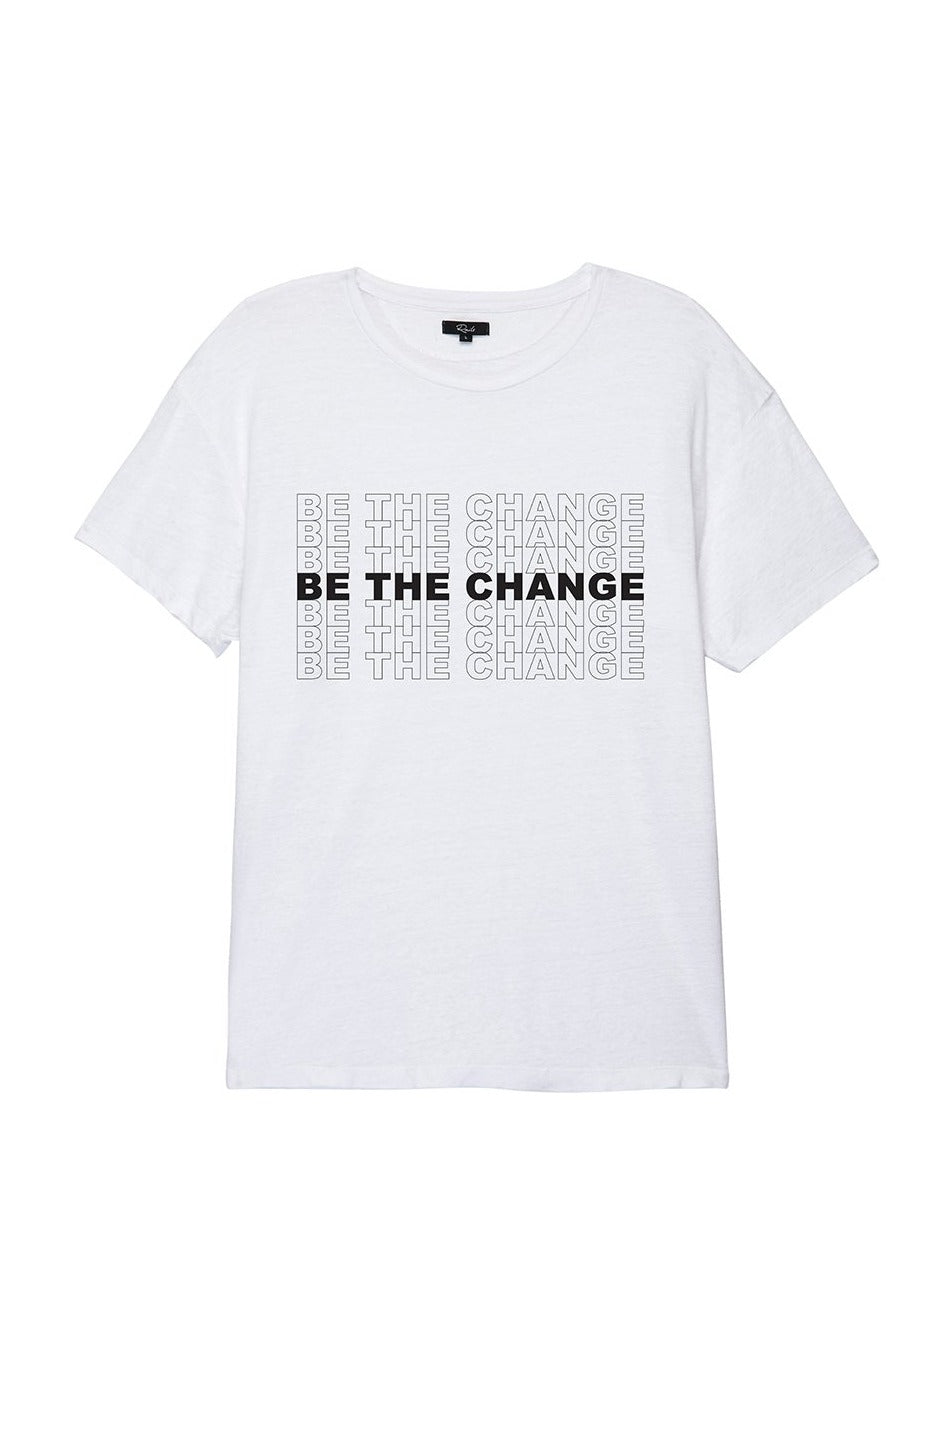 MEN'S BE THE CHANGE TEE - WHITE